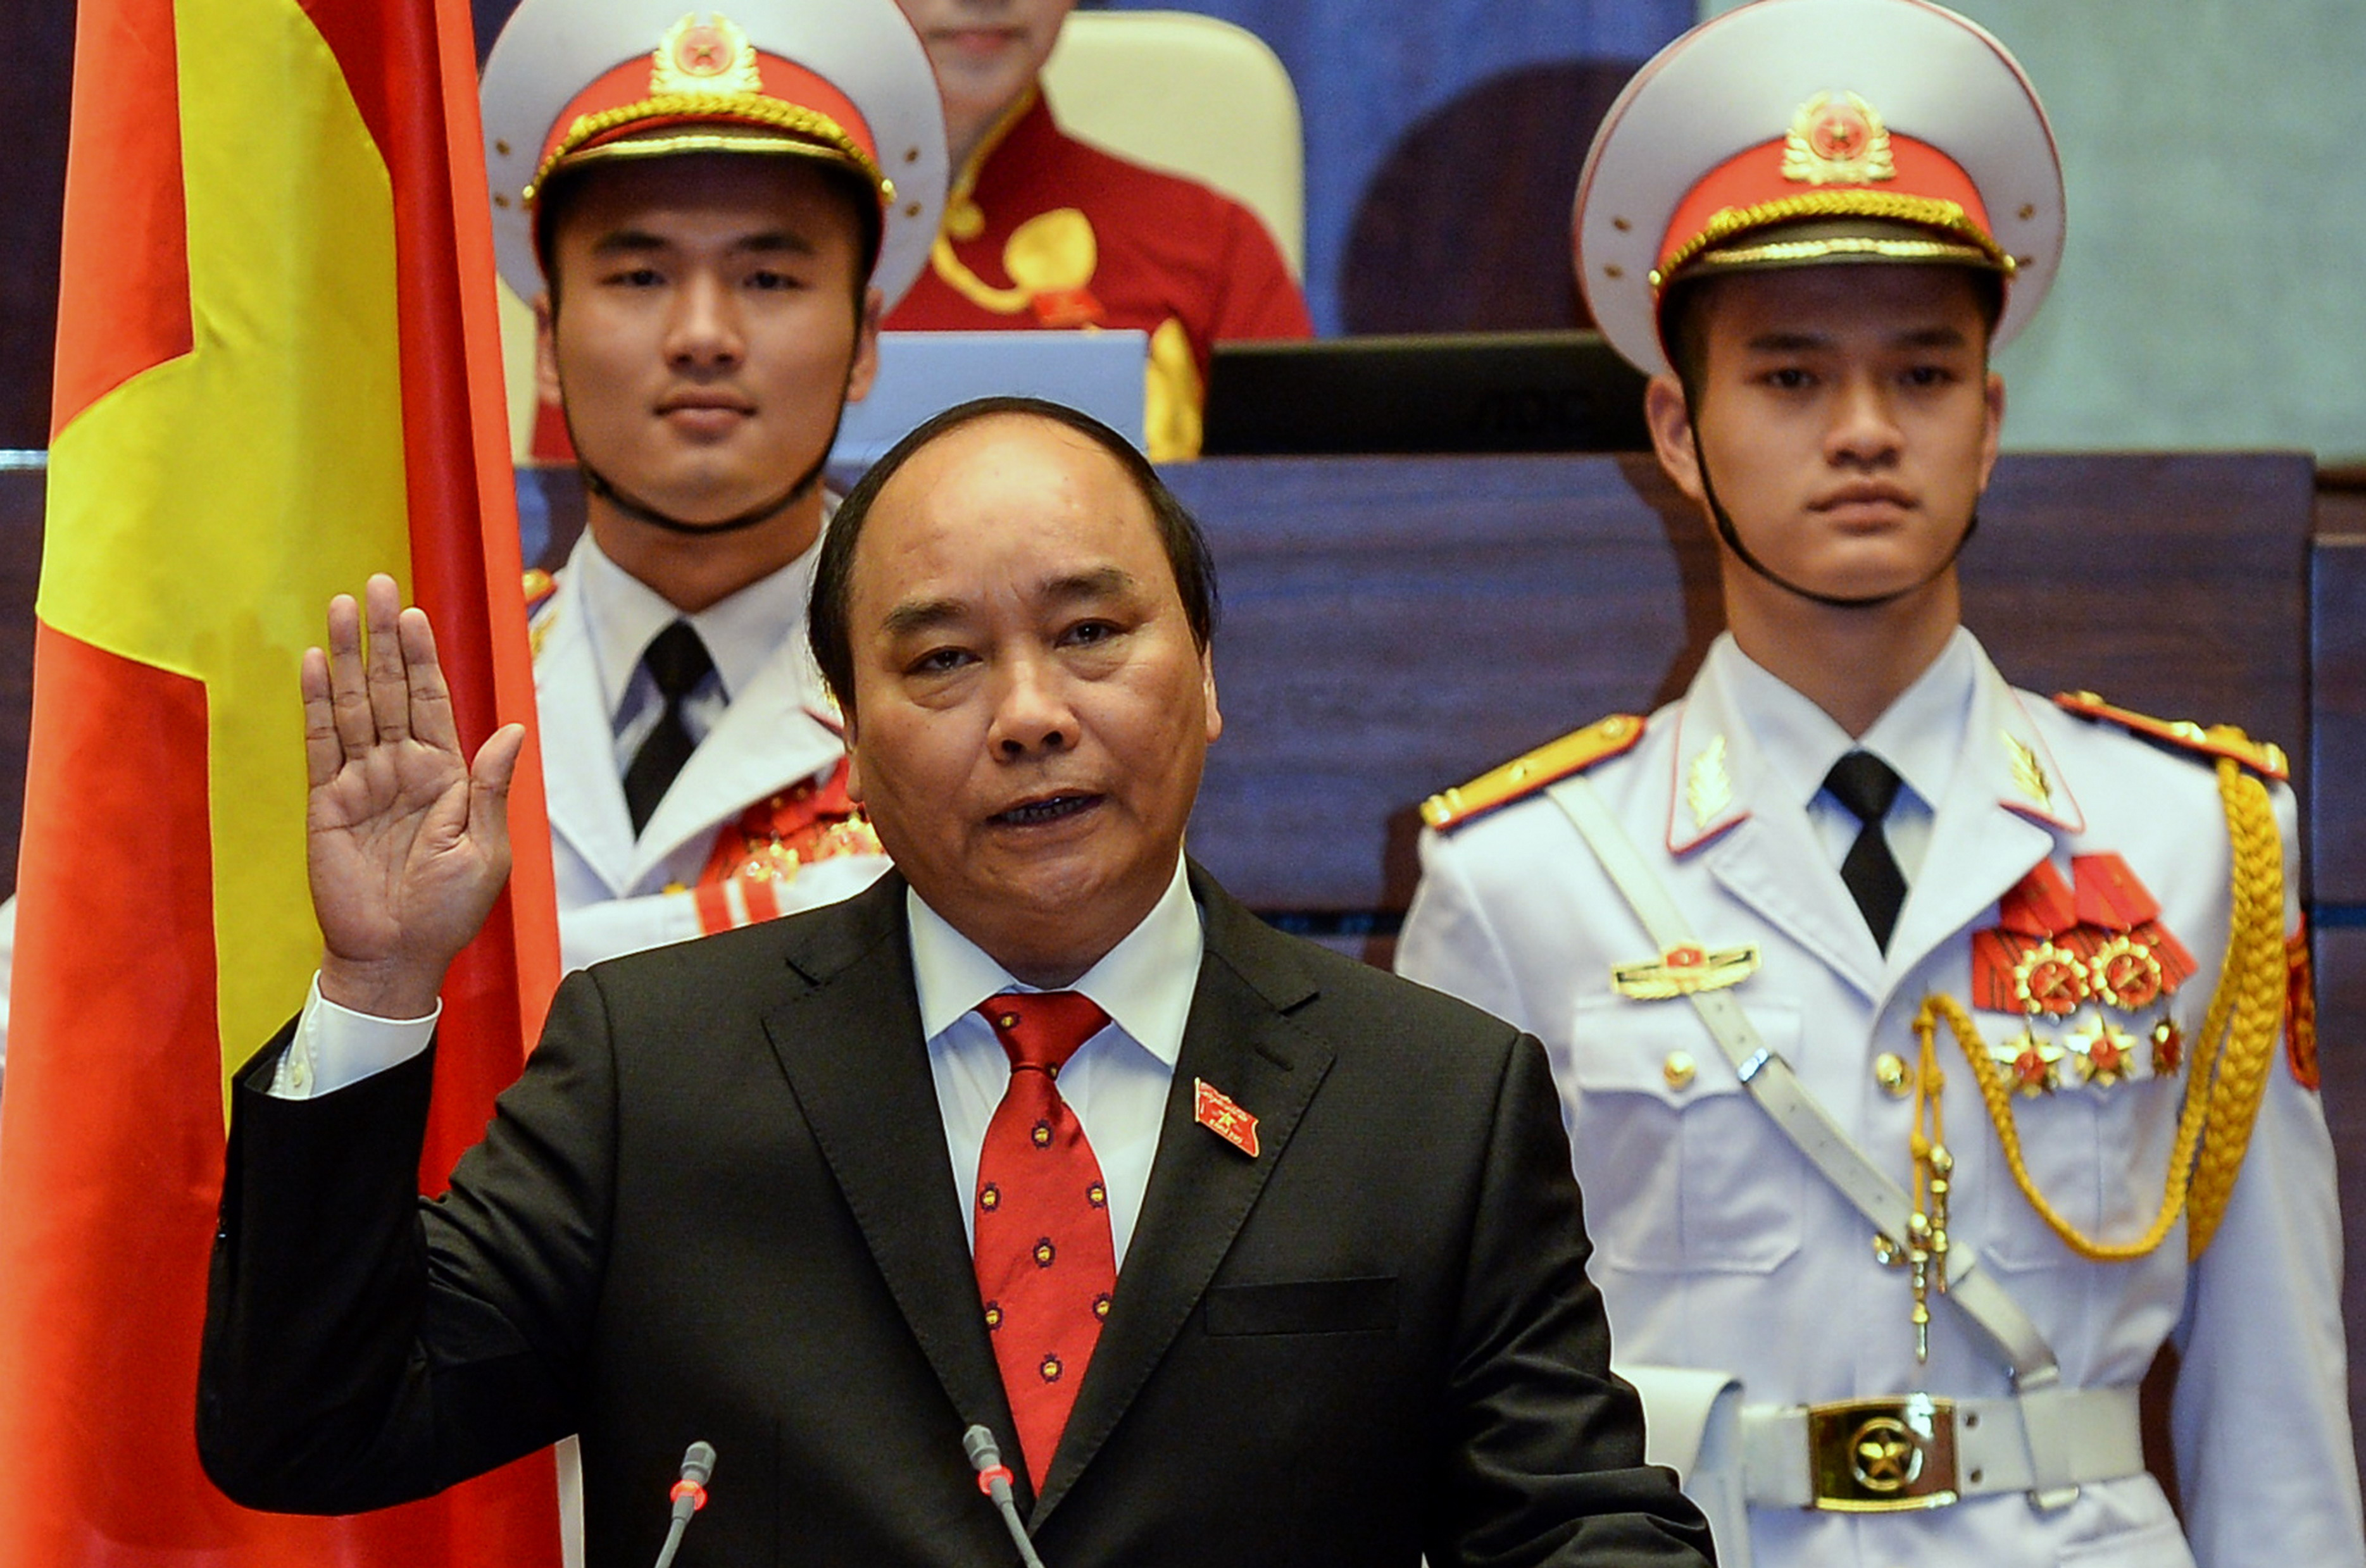 Newly elected Vietnamese Prime Minister Nguyen Xuan Phuc, 61, is sworn in during a ceremony at parliament house in Hanoi on April 7, 2016